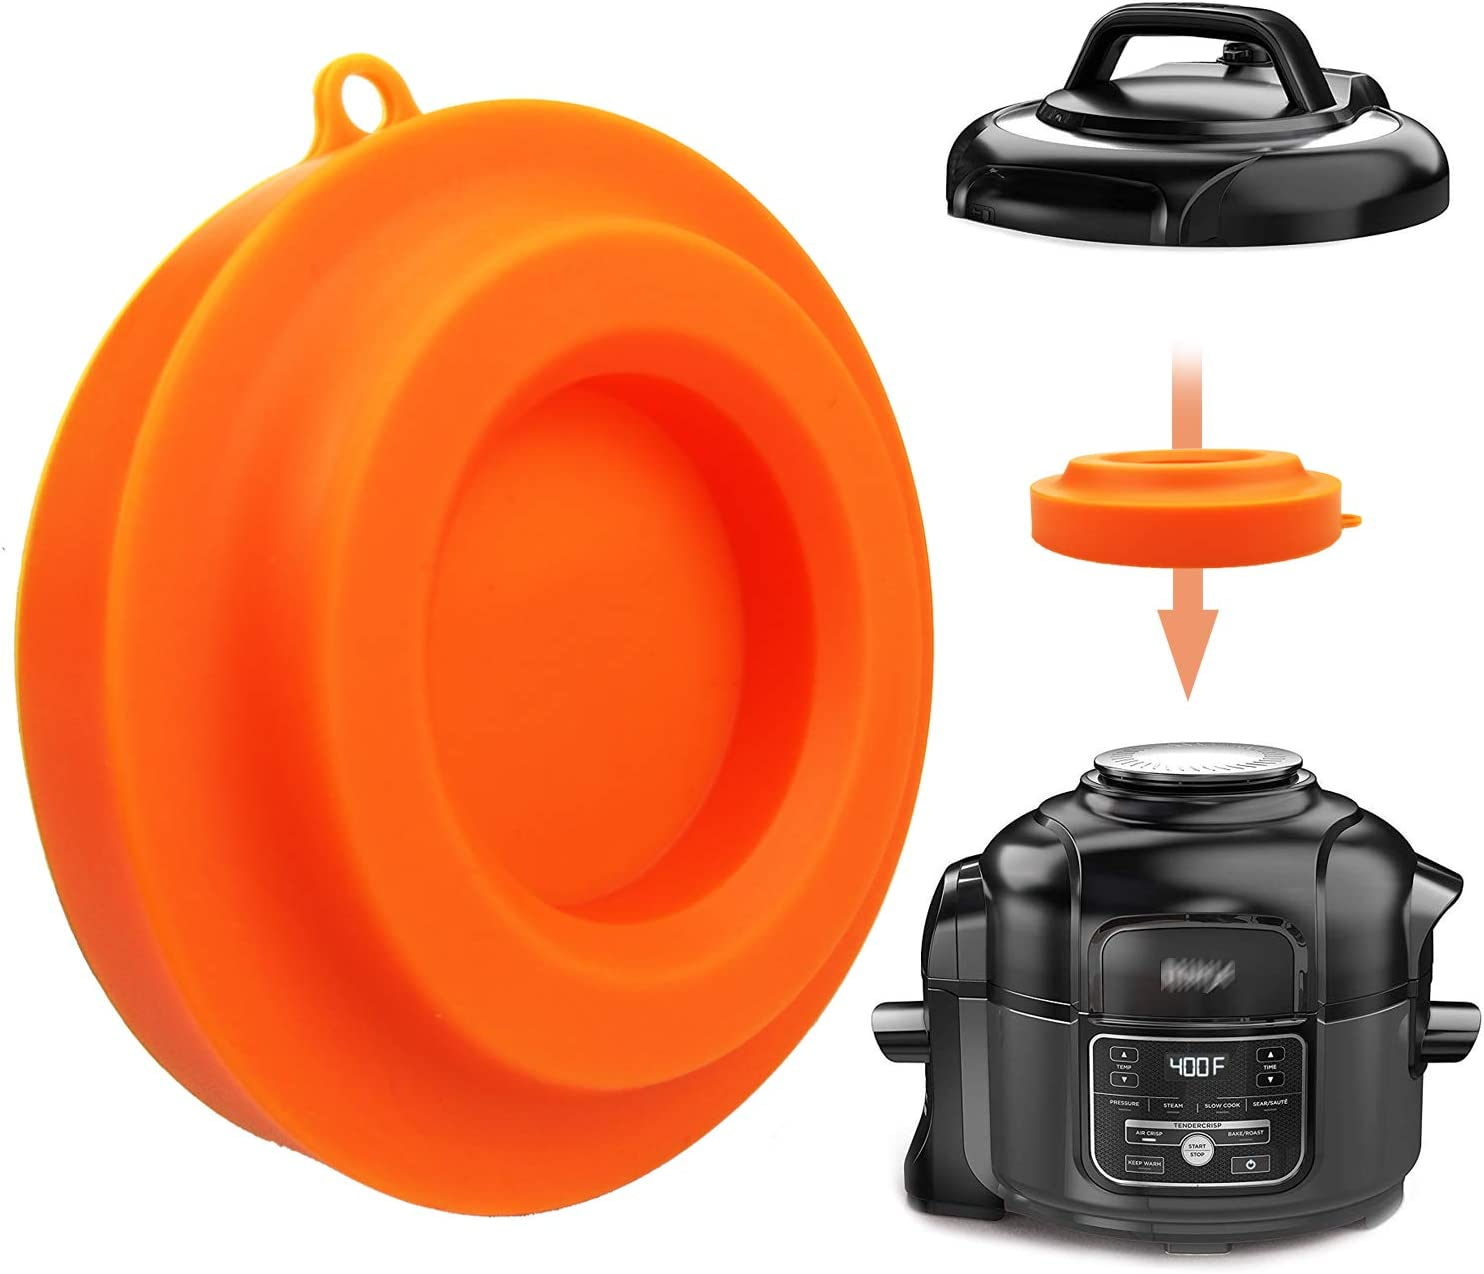 Silicone Lid Stand, Silicone Pressure Cooker Lid Holder Accessories For Ninja Foodi Pressure Cooker and Air Fryer 5 Qt, 6.5 Qt (Orange)